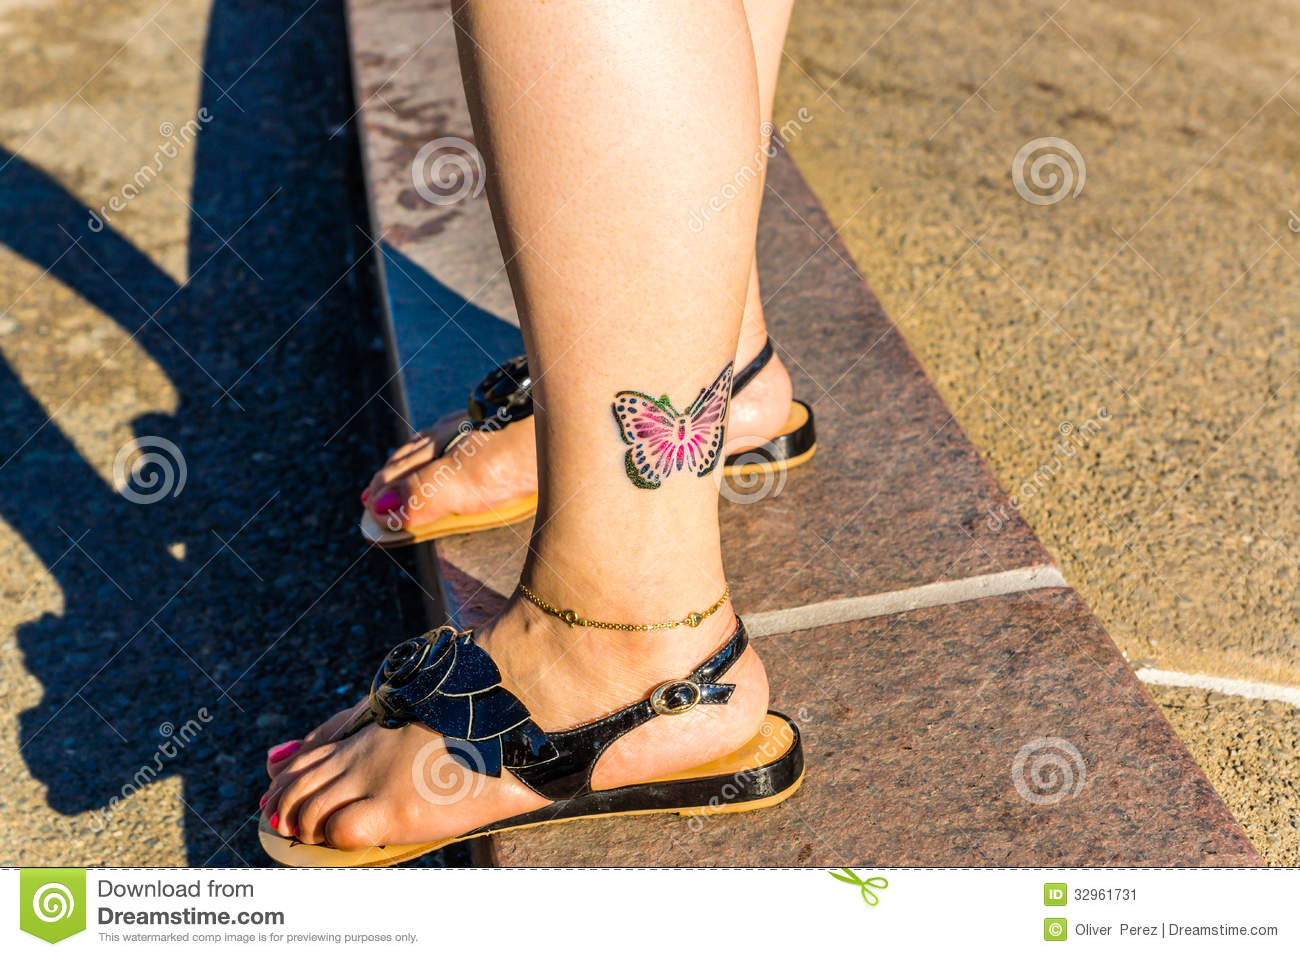 colorful-butterfly-tattoo-ankle-girls-32961731.jpg